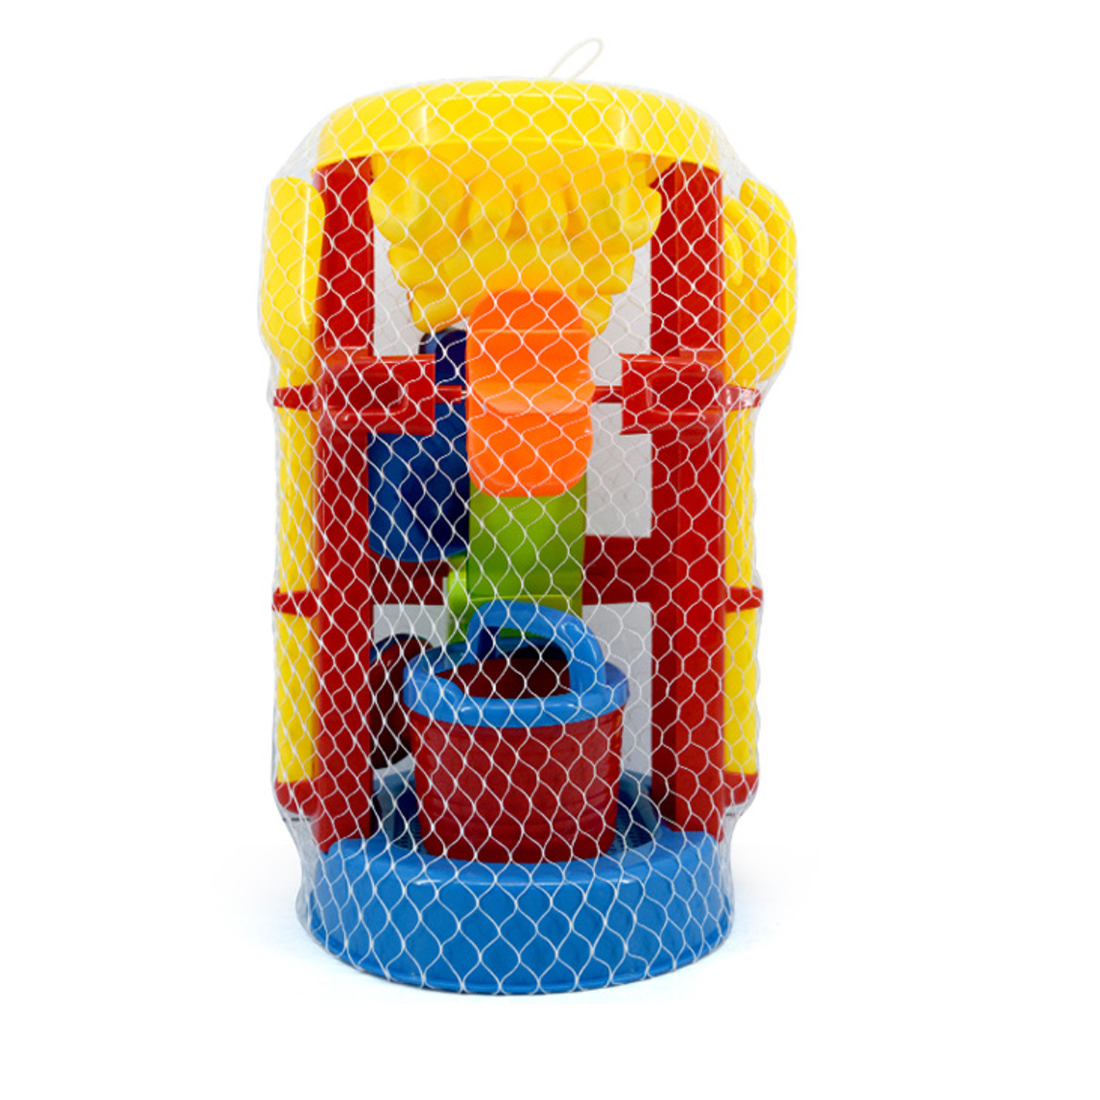 Click here to buy Big Size Beach Sand Toys Set Sand Glass with Mesh Bag for Kids Random Delivery.